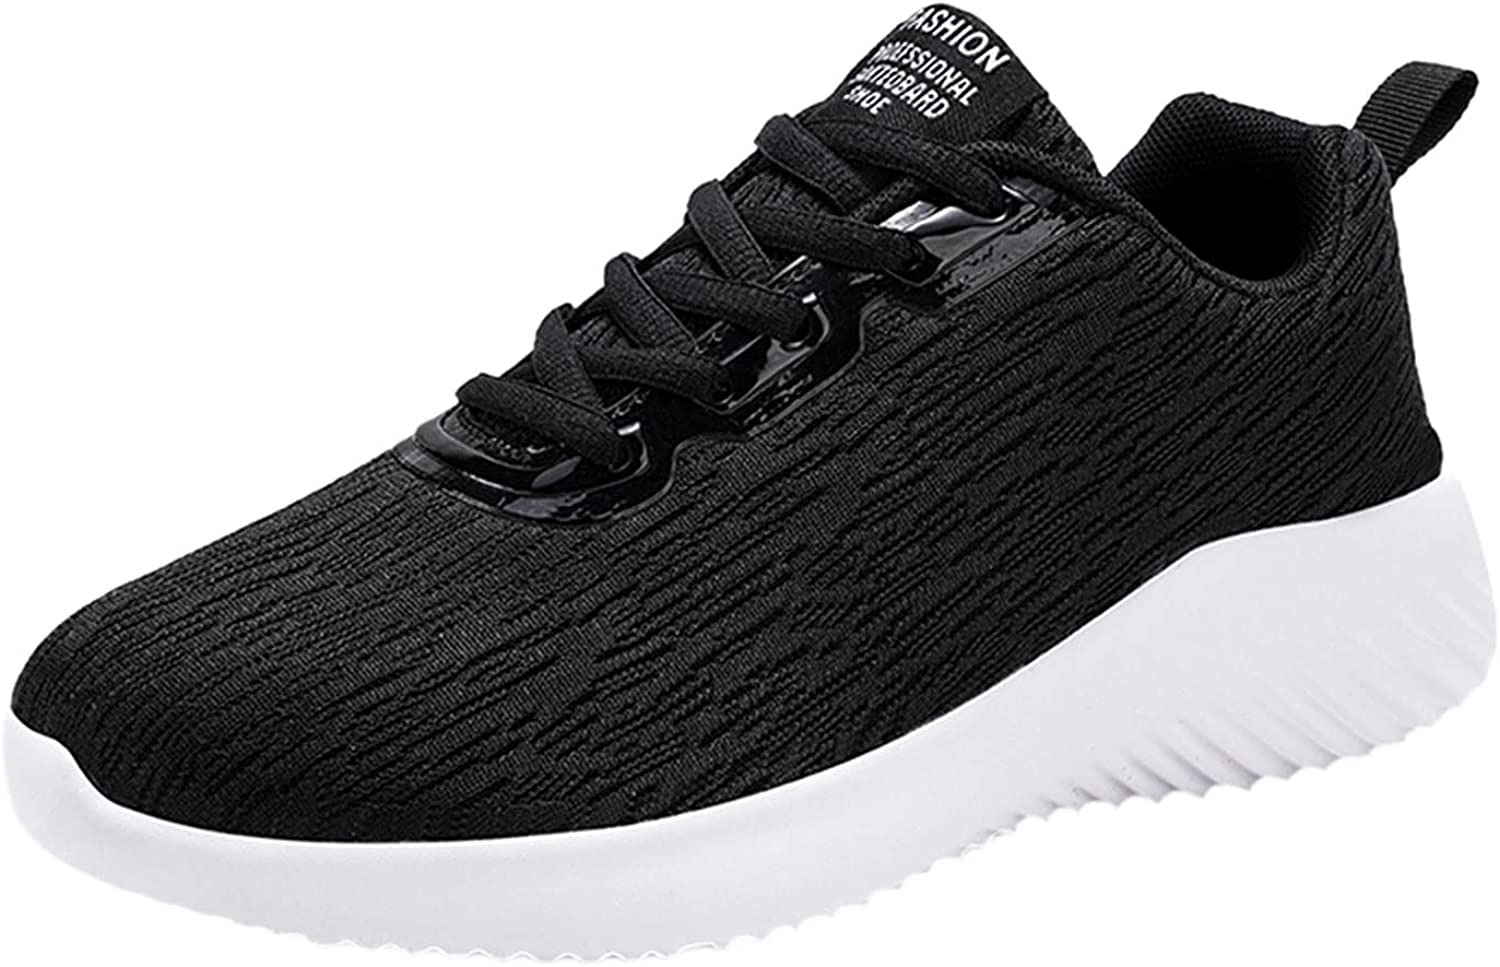 PMUYBHF Womens Sneakers Running Shoes Popularity Tennis Manufacturer direct delivery Wa Athletic Workout